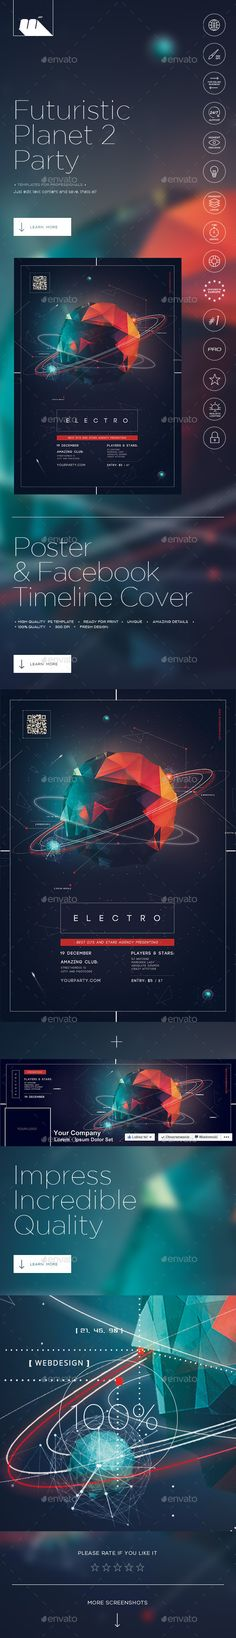 Futuristic Planet Party 2 Poster Tempalte #design Download: http://graphicriver.net/item/futuristic-planet-party-2-poster/12503527?ref=ksioks